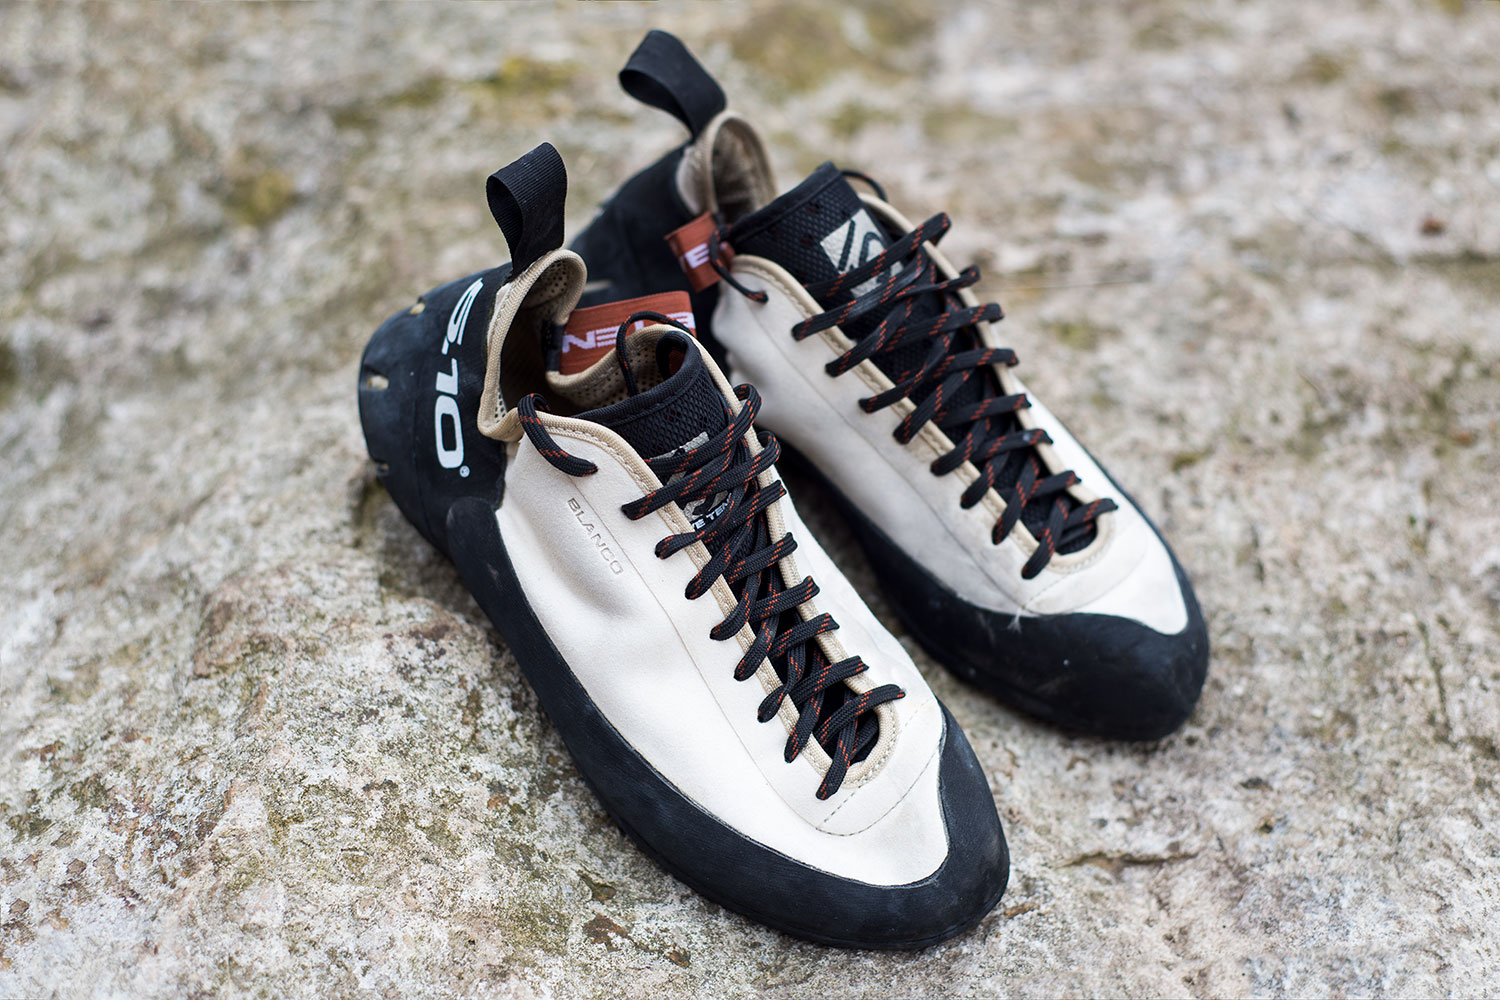 2017 Rock Climbing Shoes Review fiveten 5.10 anasazi blanco